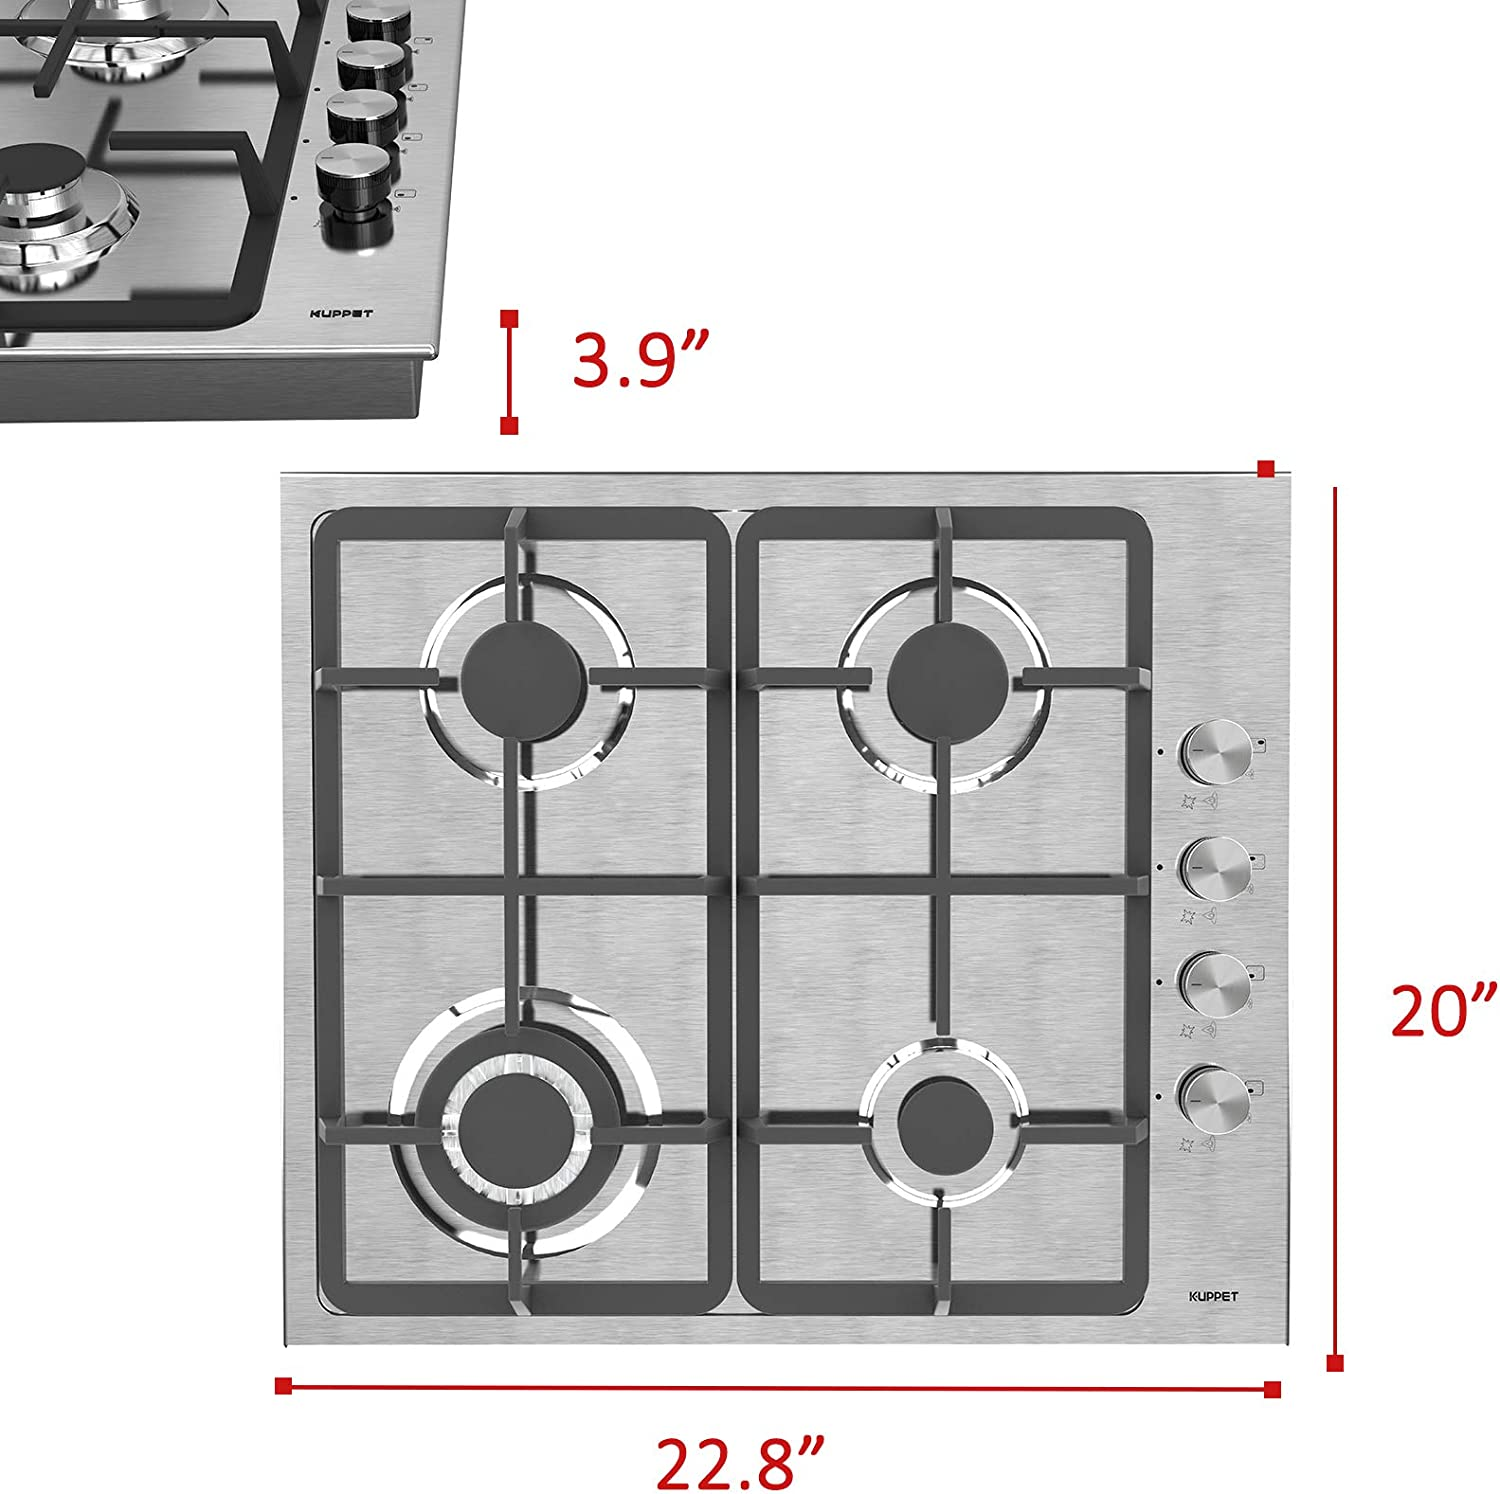 5 Burners Gas Stove Cooktop ETL Safety Certified Gas Cooktop KUPPET 20x34 inches Built in Gas Cooktop Stainless Steel Cooktop Gas Hob Thermocouple Protection